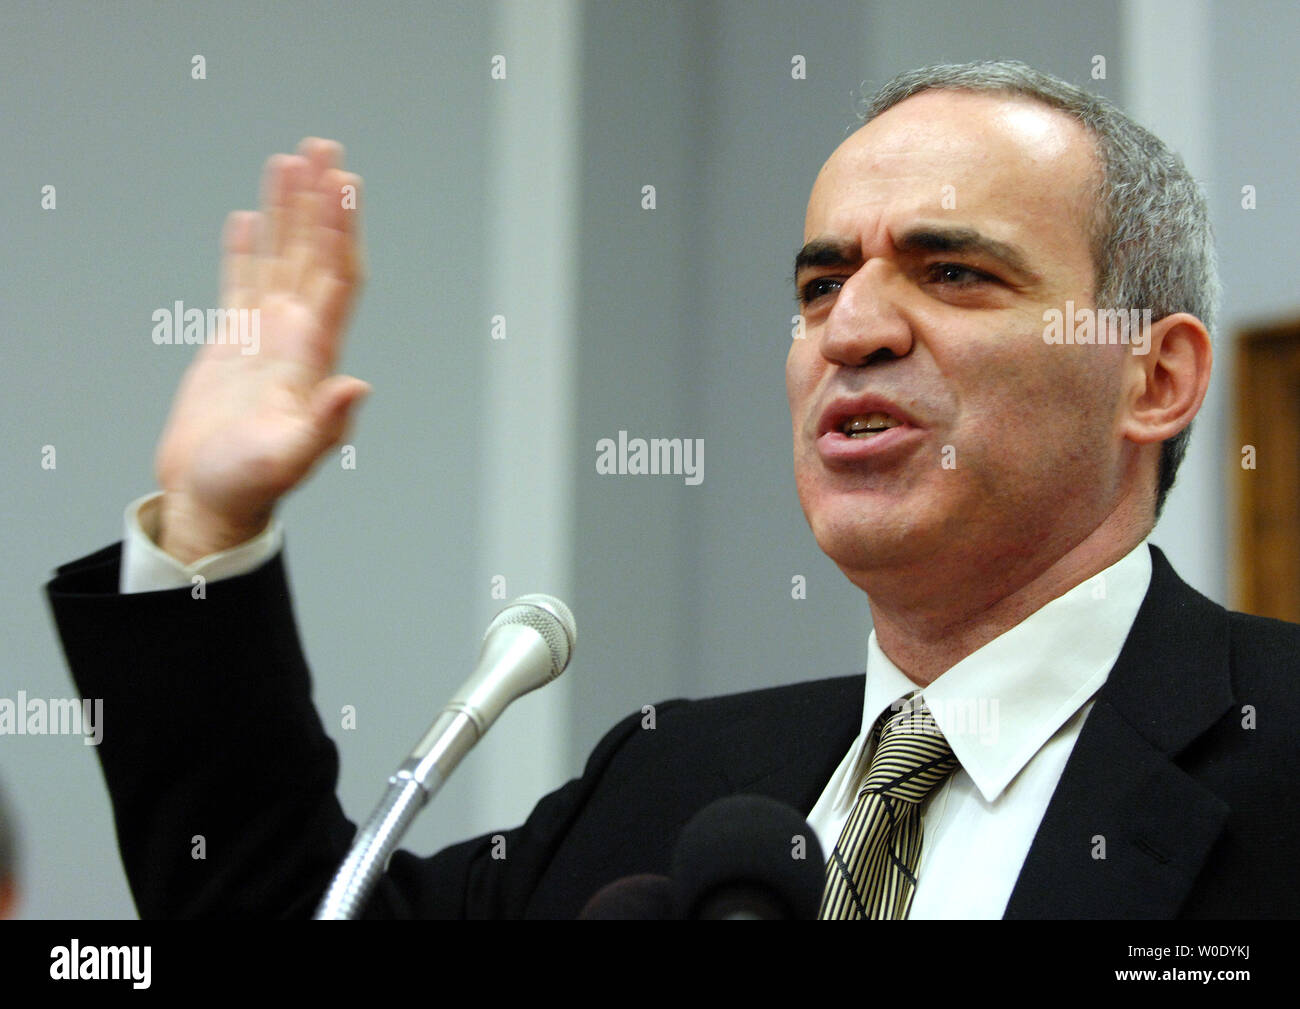 Garry Kasparov, Russian opposition leader and former World chess Champion, participates in a conference about politics in Russia on October 10, 2007, on Capitol Hill in Washington. One year after Anna Politkovskaya's murder, a Russian journalist and human rights activist known for her opposition to the Chechen conflict and Russian President Putin, Kasparov says democracy in Russia is going backwards.    (UPI Photo/Roger L. Wollenberg) - Stock Image